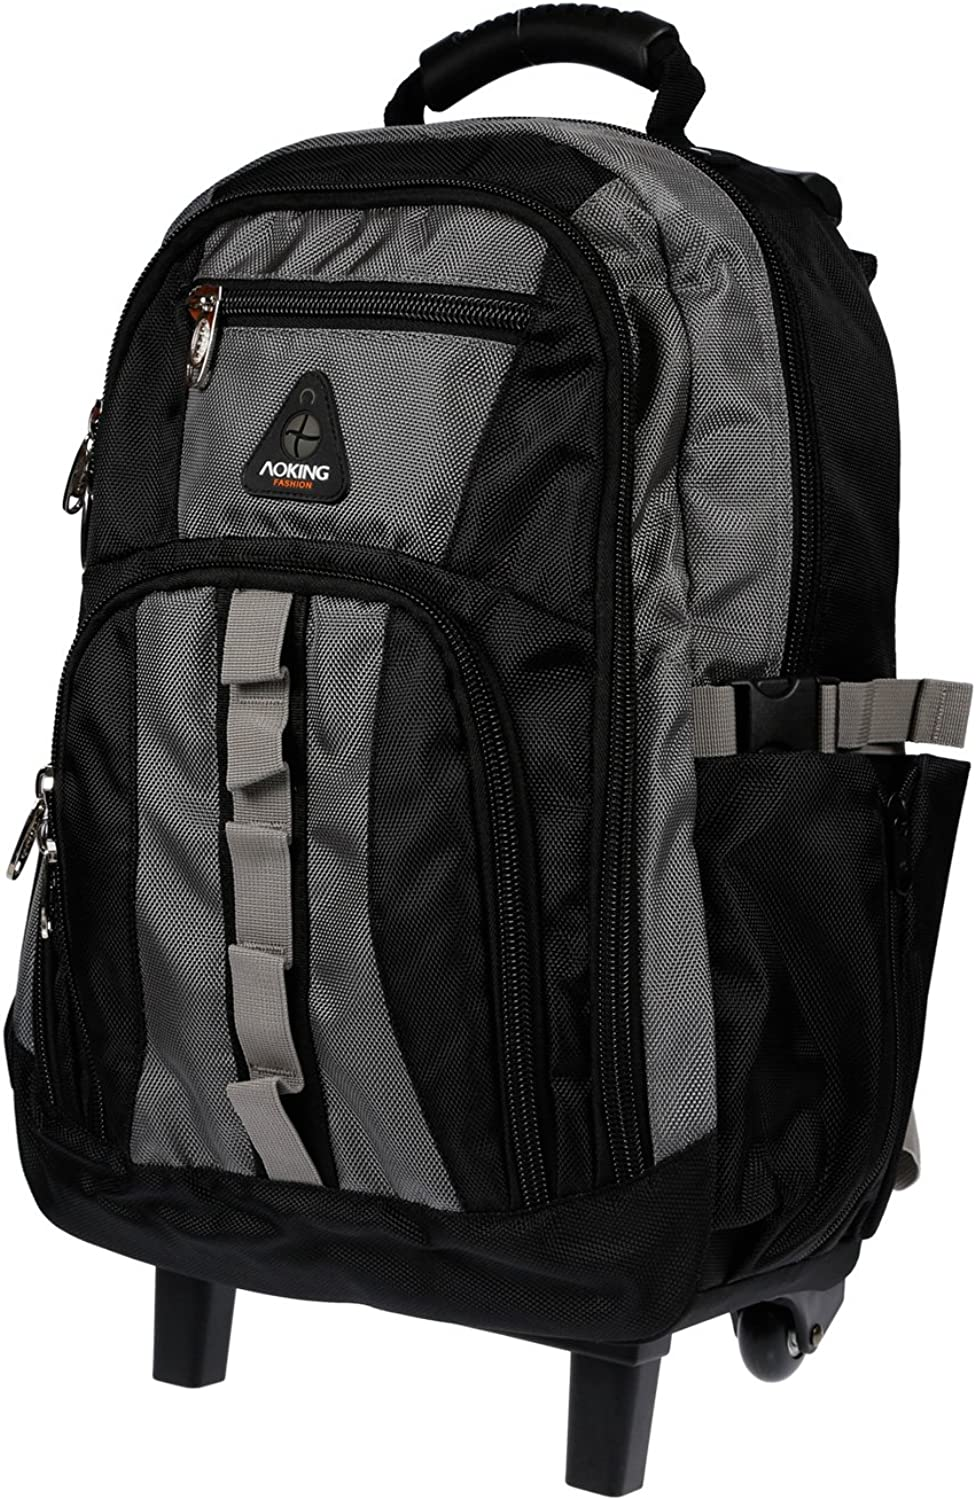 Folding Trolley Backpack Trolley School Backpack Bag Various Colours, Black Grey (Grey)  AK510